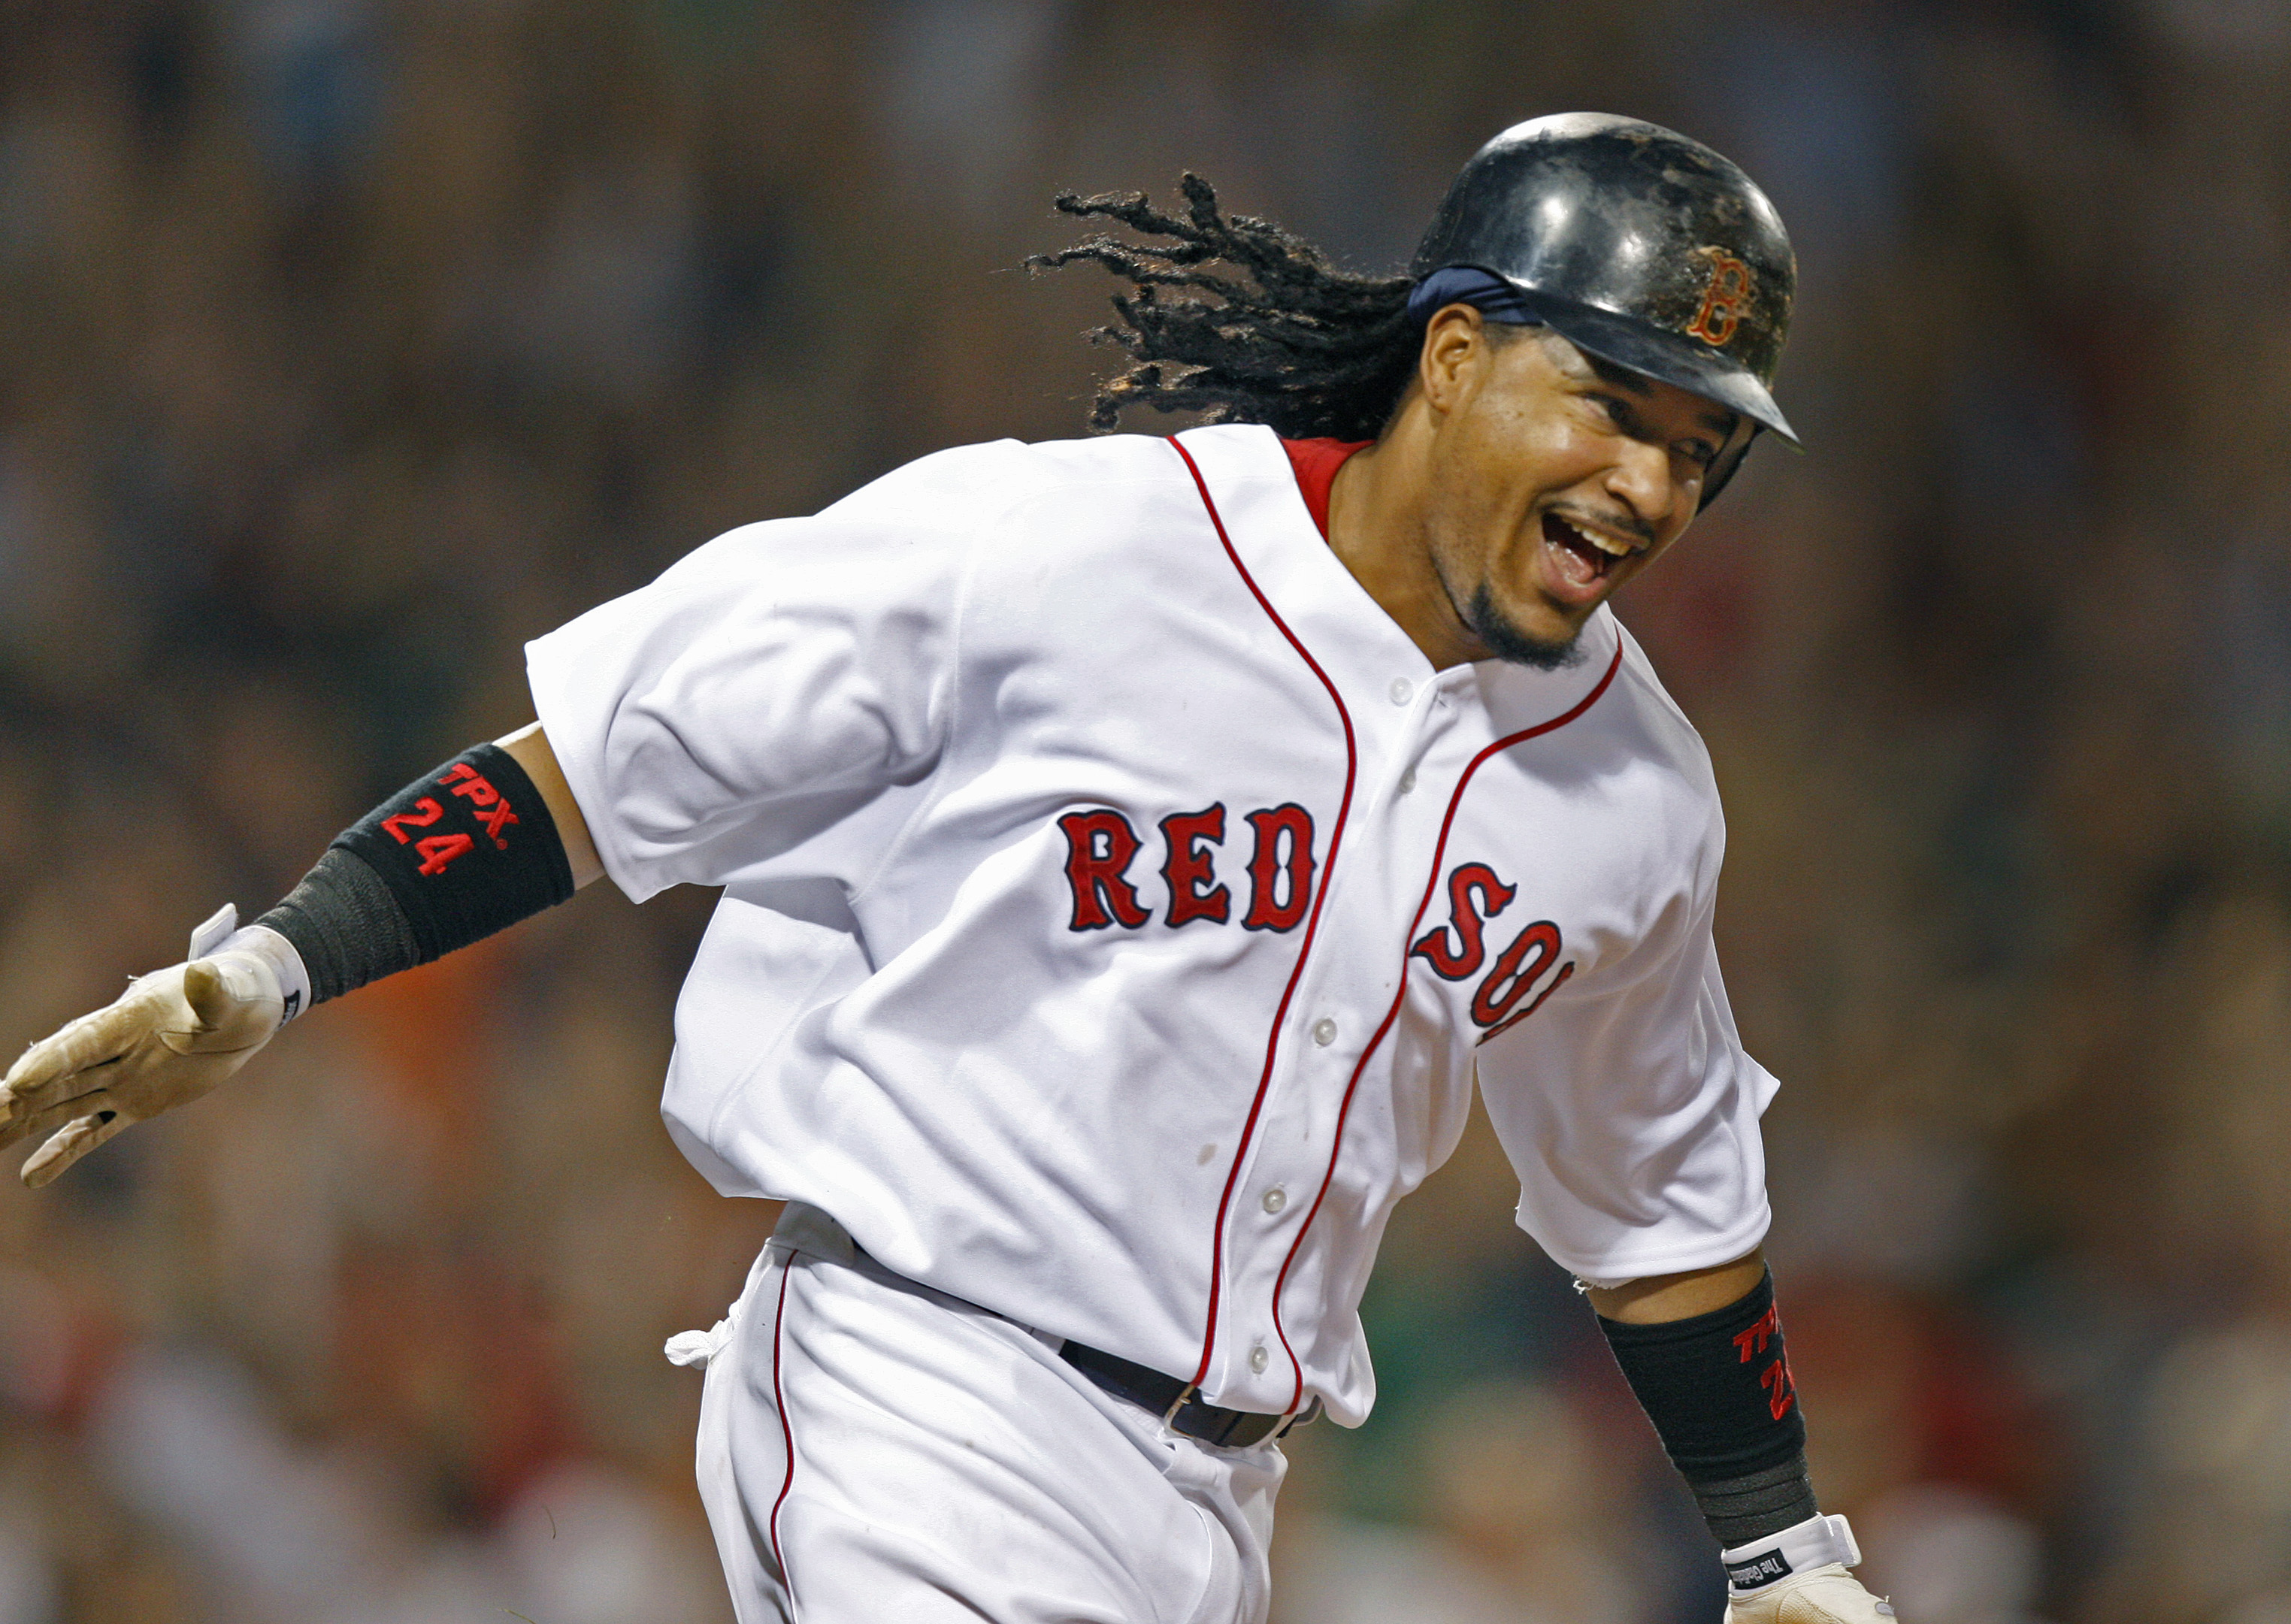 Red Sox Name Cdredsox